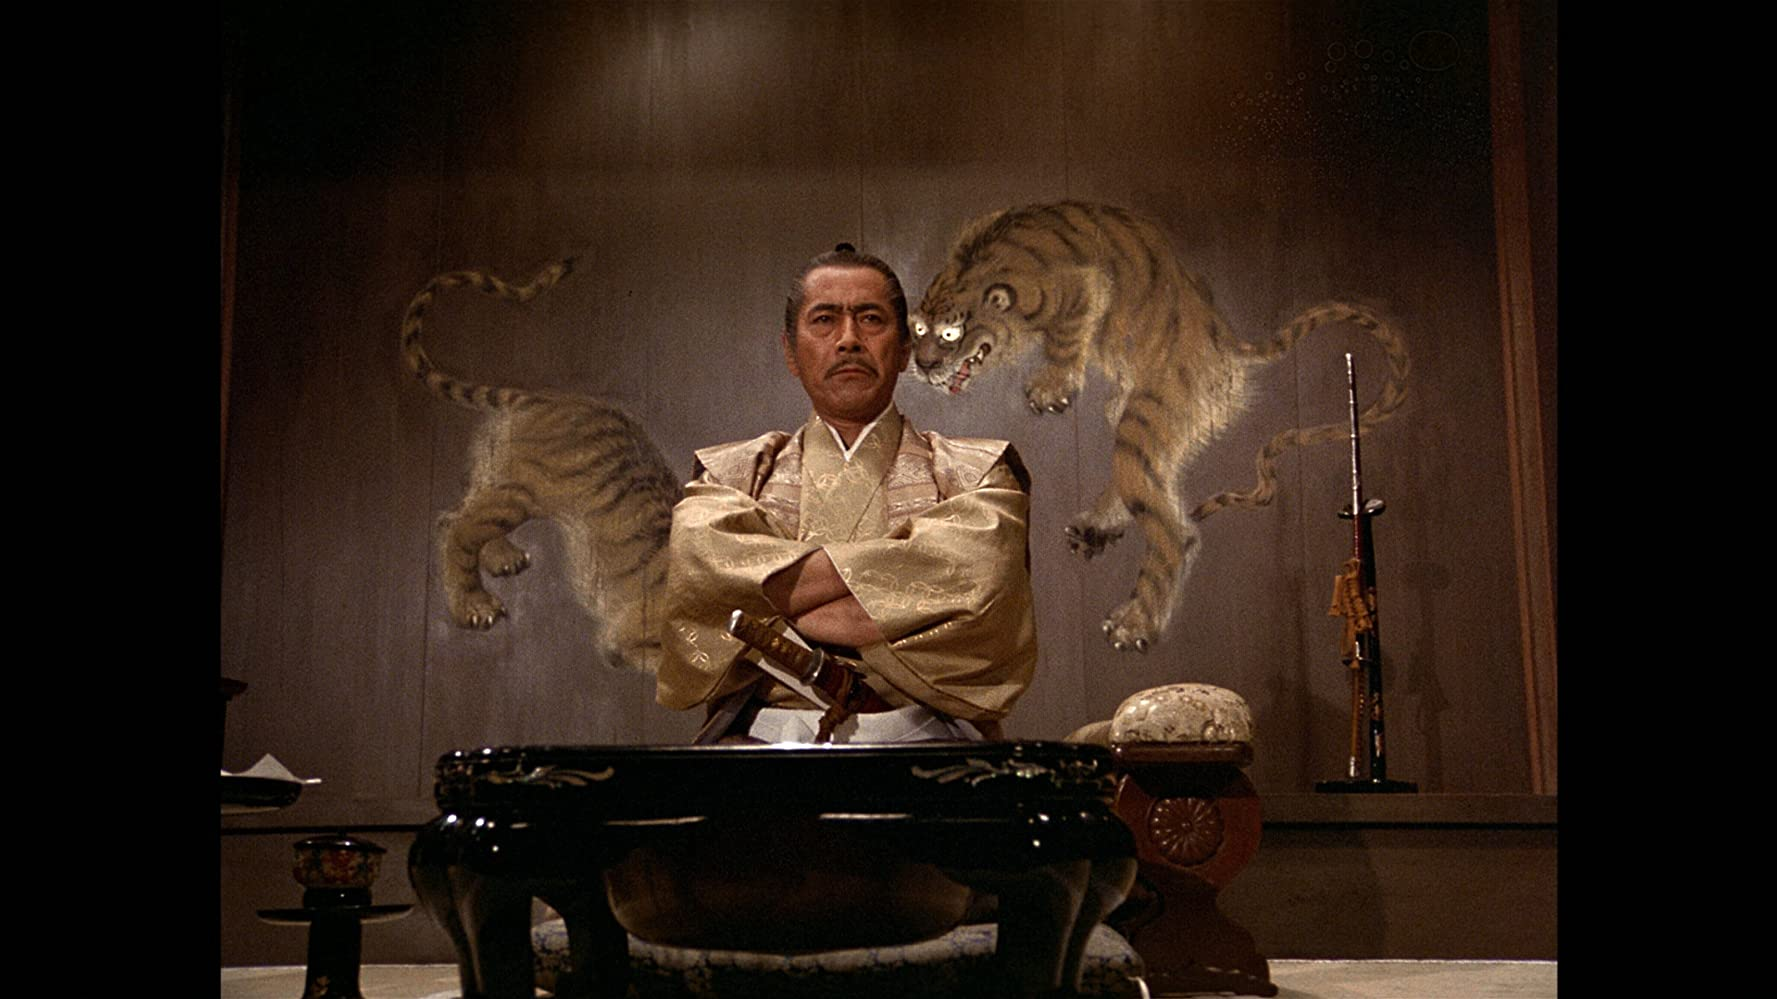 Toshir Mifune in Shogun 1980